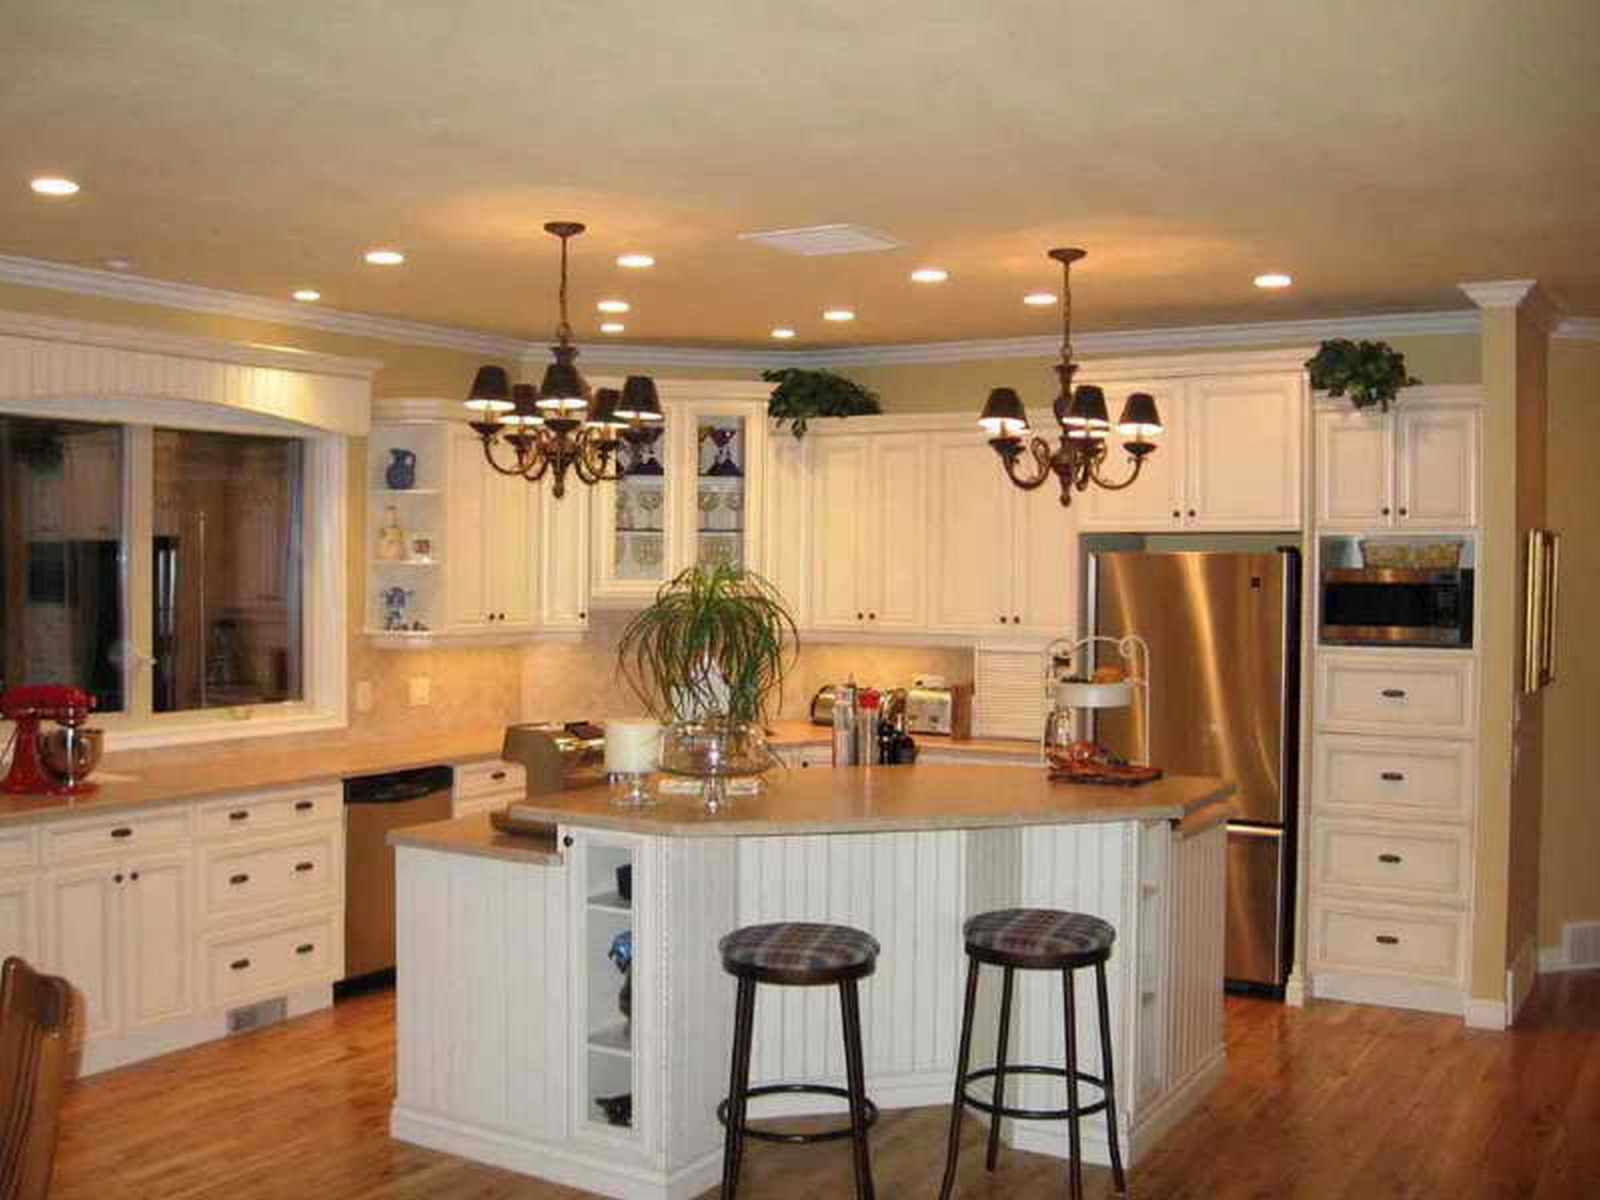 Kitchen remodeling contractor cabinets counters flooring for Kitchen floor remodel ideas